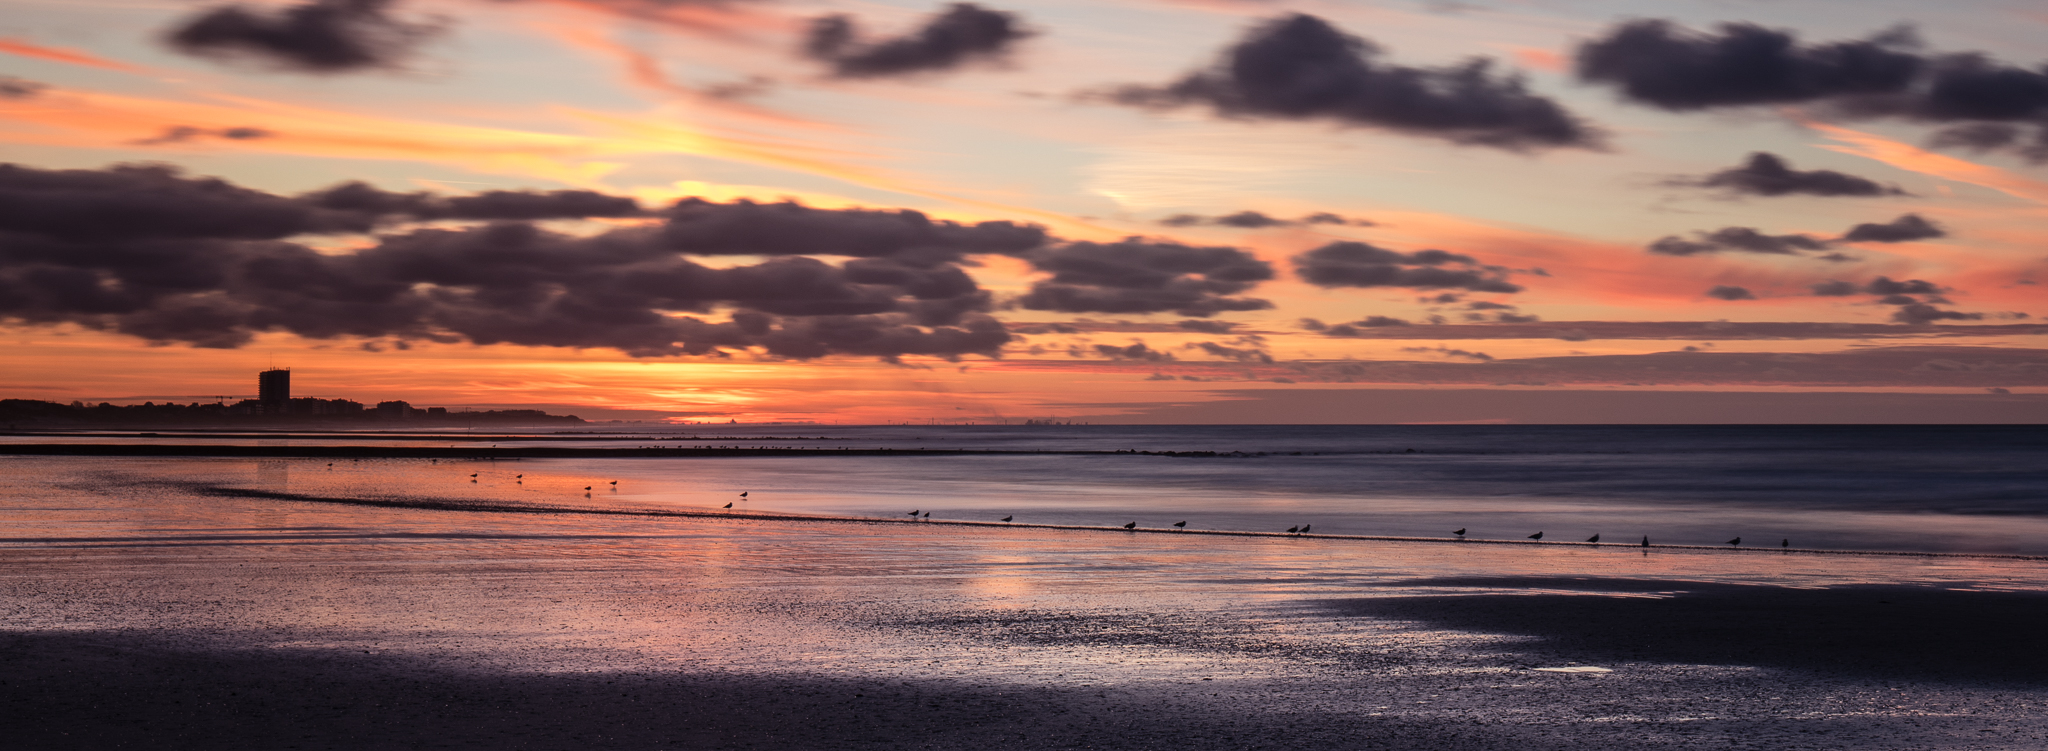 Beach at low tide, just after sunset..., Belgium